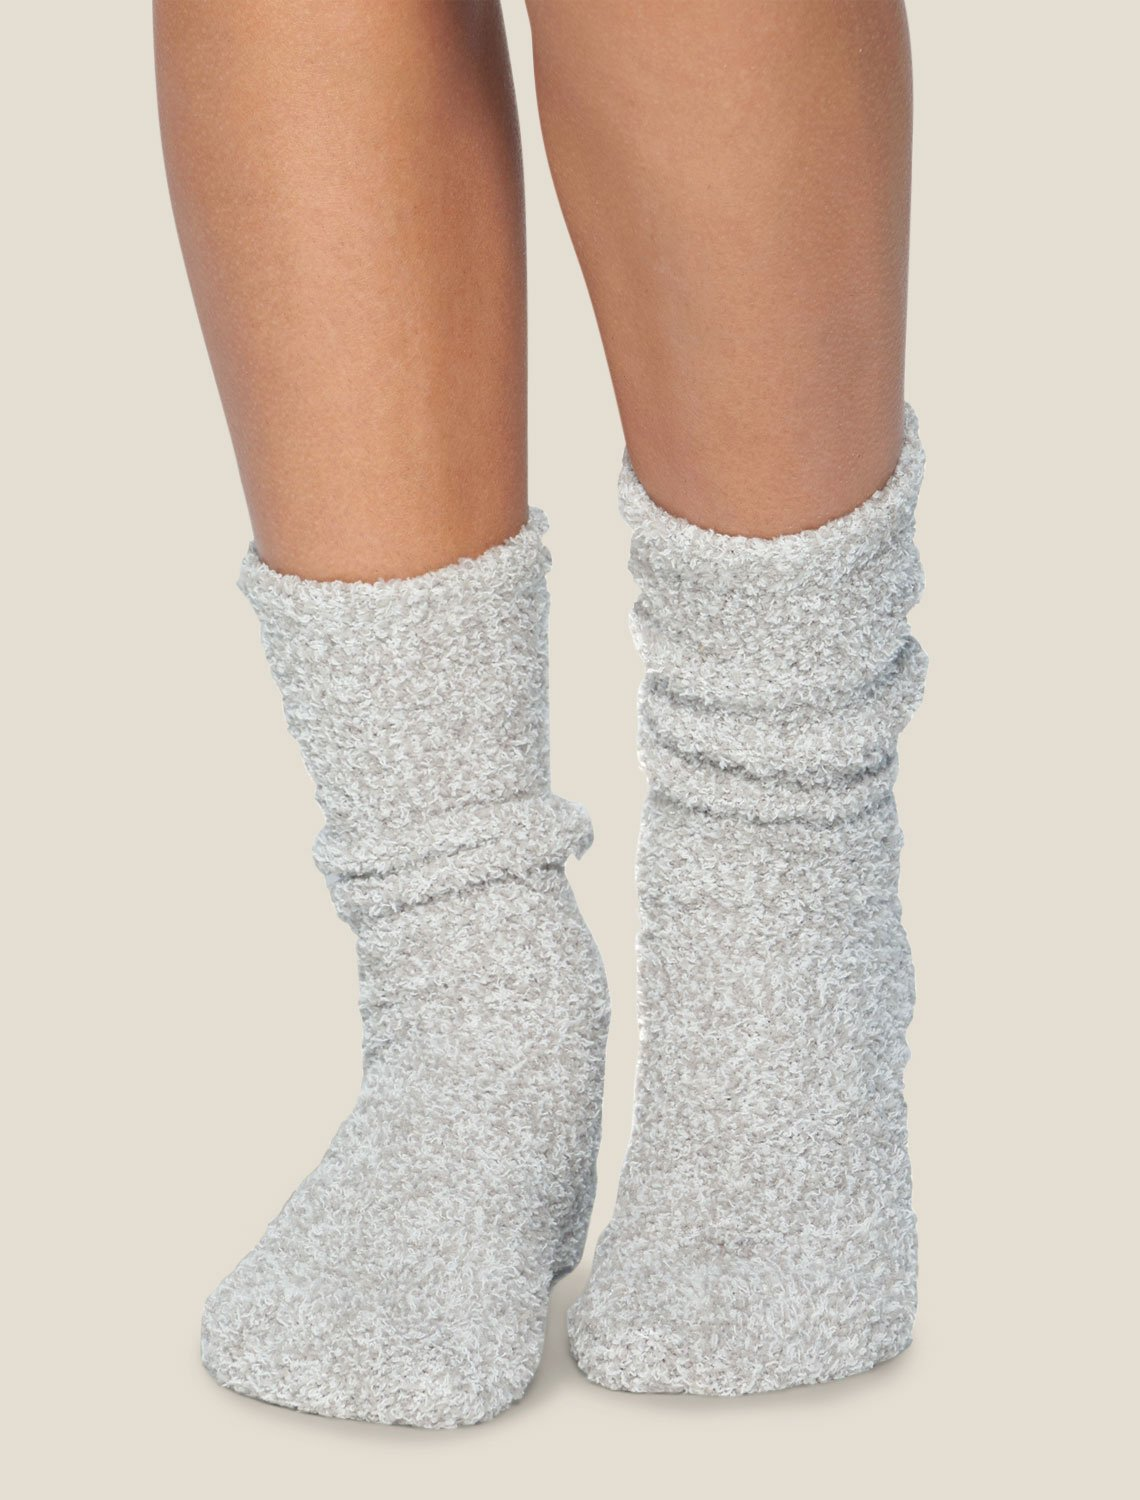 Barefoot Dreams Accessories Oyster & White / O/S Cozychic Heathered Socks in Oyster & White